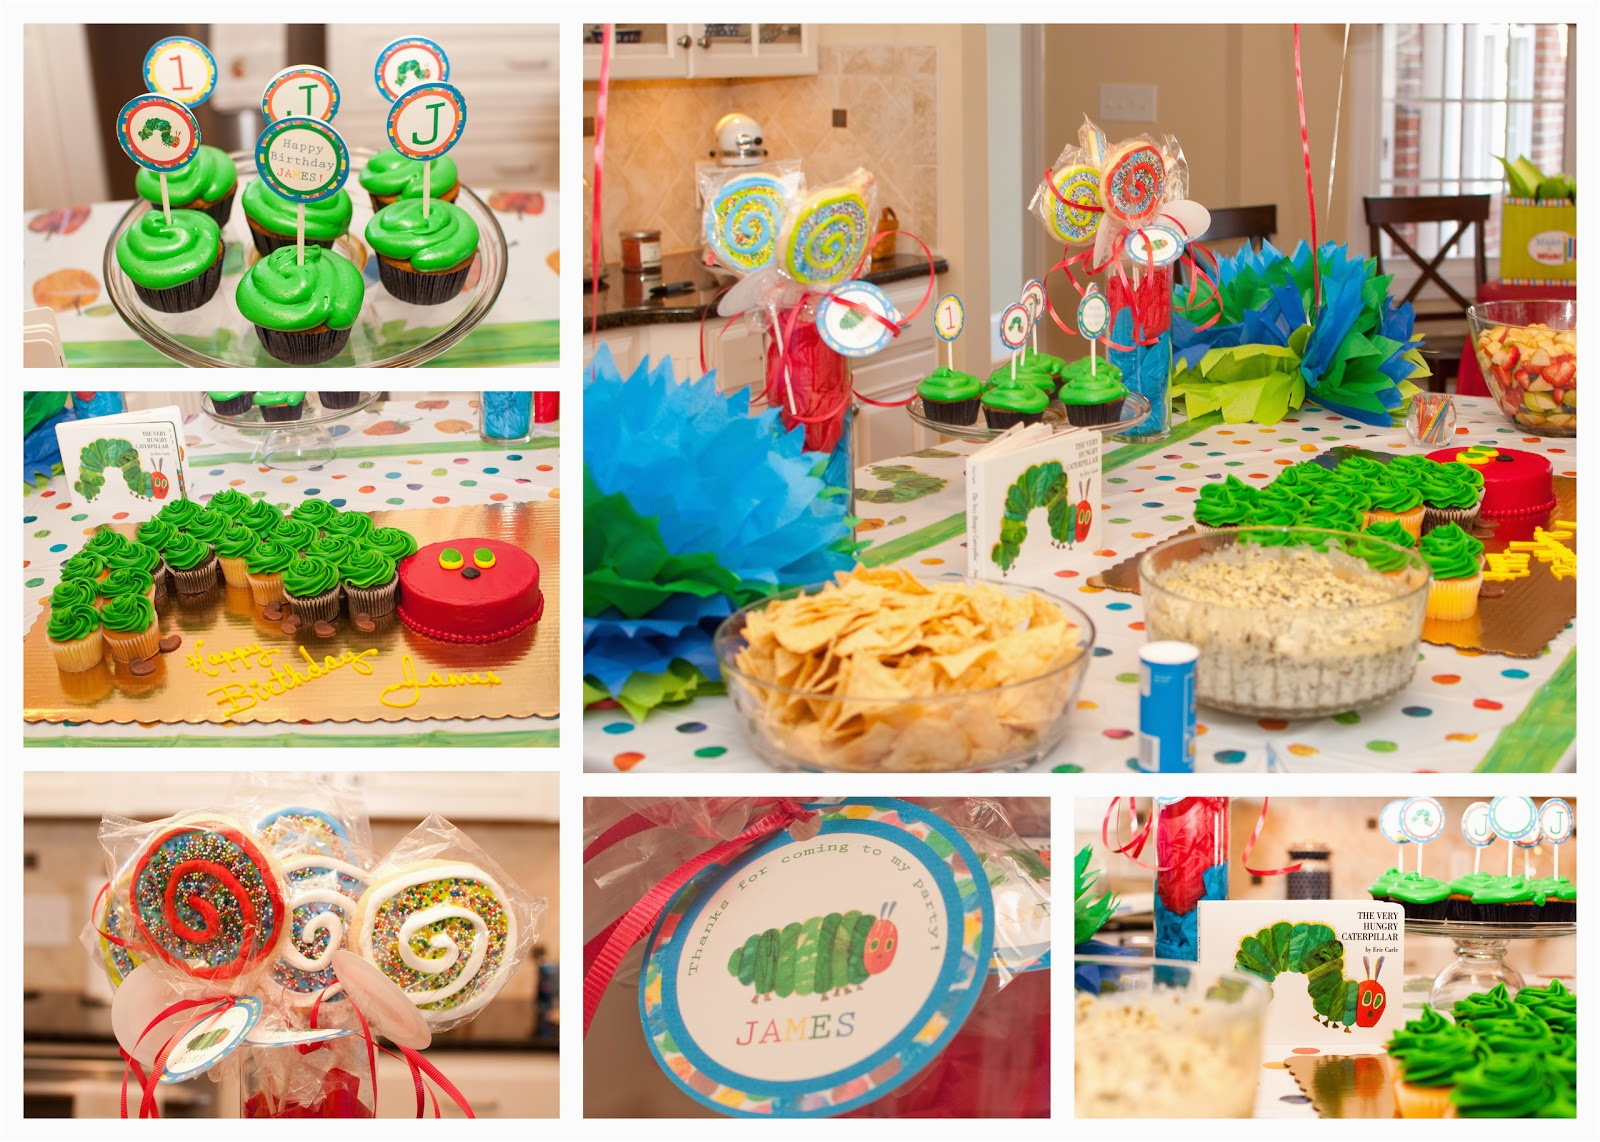 The Very Hungry Caterpillar Birthday Party Decorations the Very Hungry Caterpillar First Birthday Party the